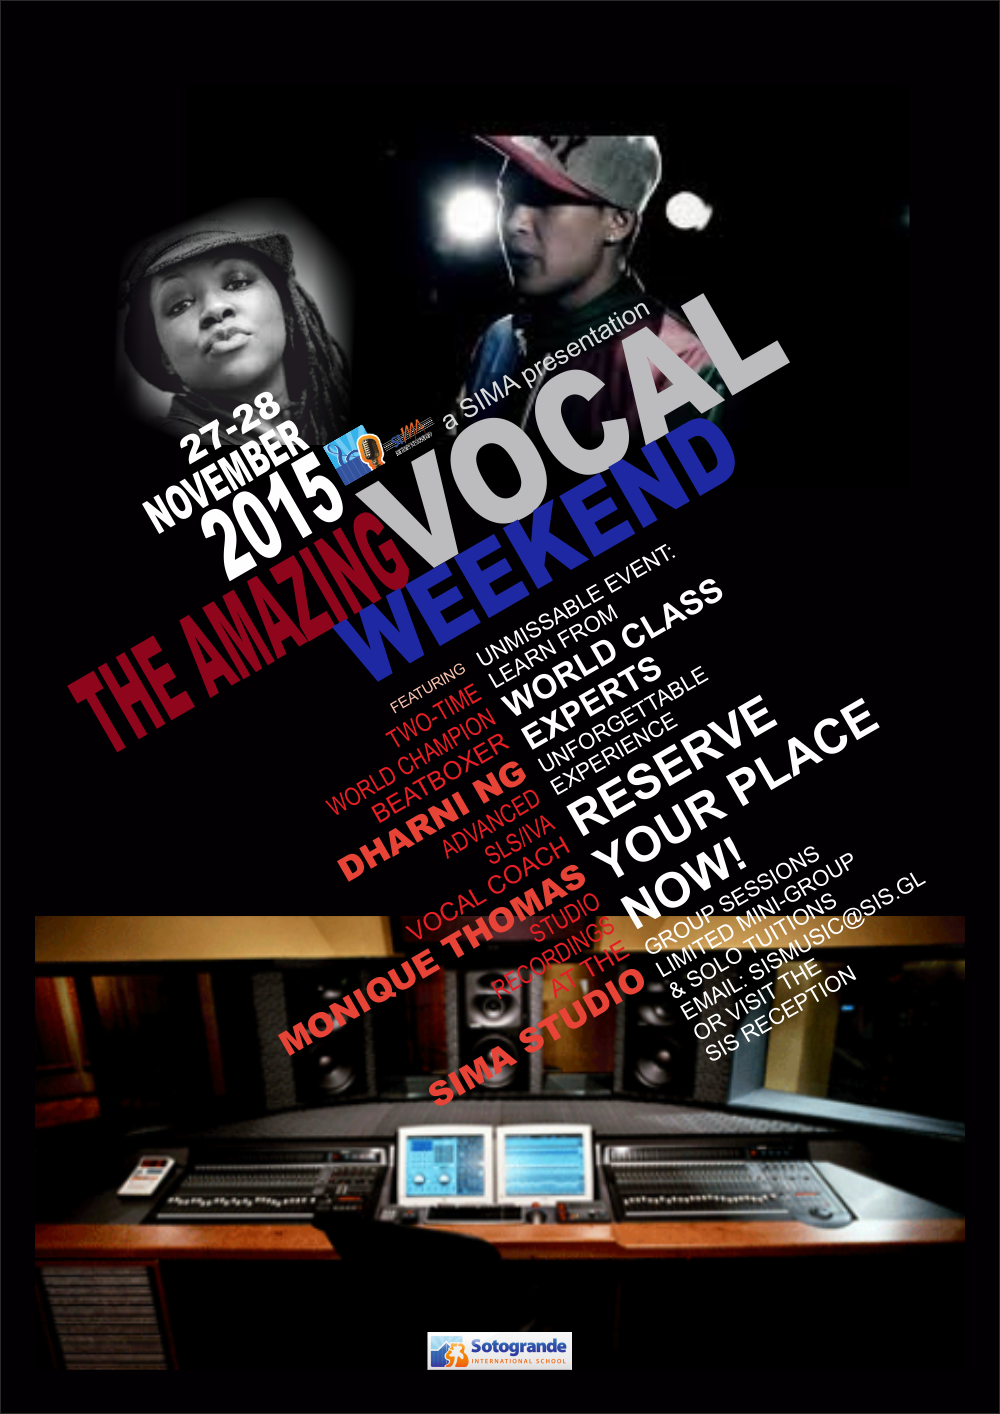 vocal weekend poster 1b